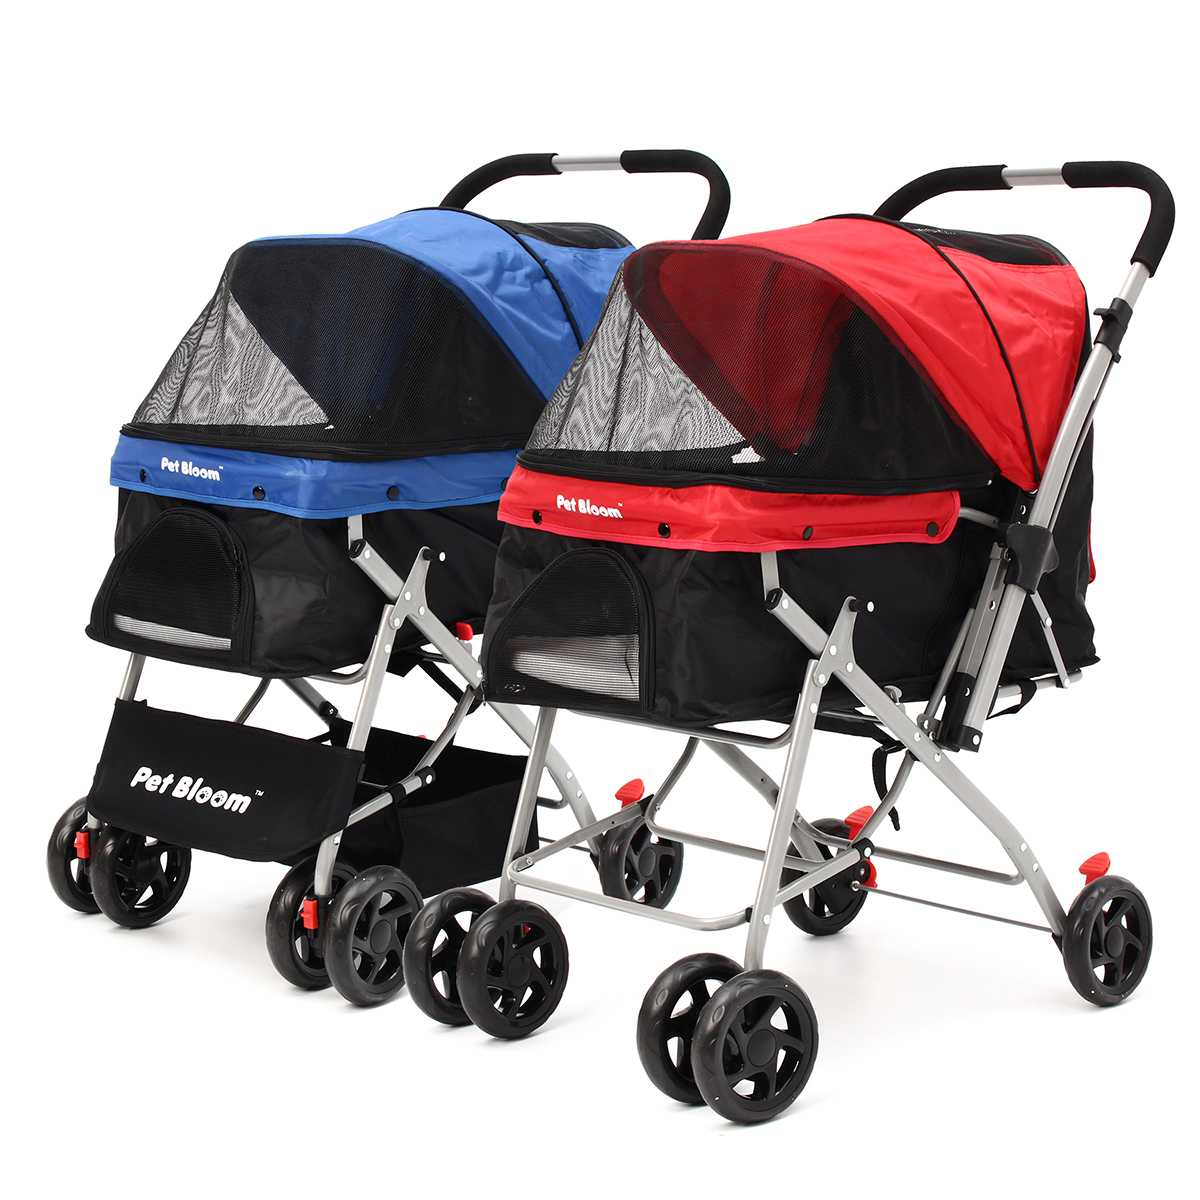 4-wheels-foldable-pet-travel-stroller-walk-pushchair-puppy-cat-cage-dog-carrier-collapsible-cart-outbound-supplies-2-colors